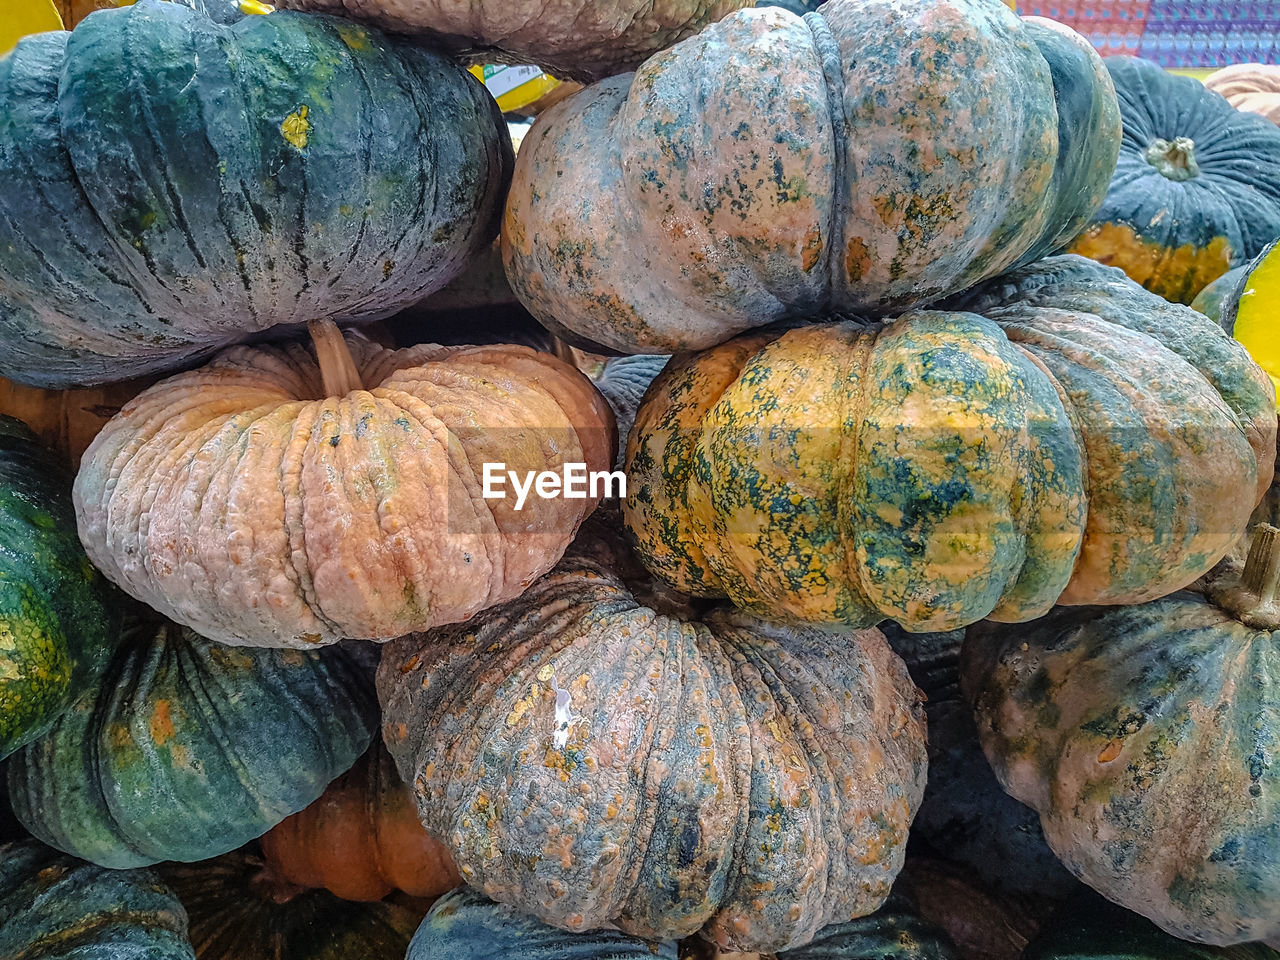 food and drink, healthy eating, food, large group of objects, freshness, wellbeing, full frame, backgrounds, pumpkin, still life, vegetable, no people, day, for sale, retail, market, market stall, stack, high angle view, close-up, outdoors